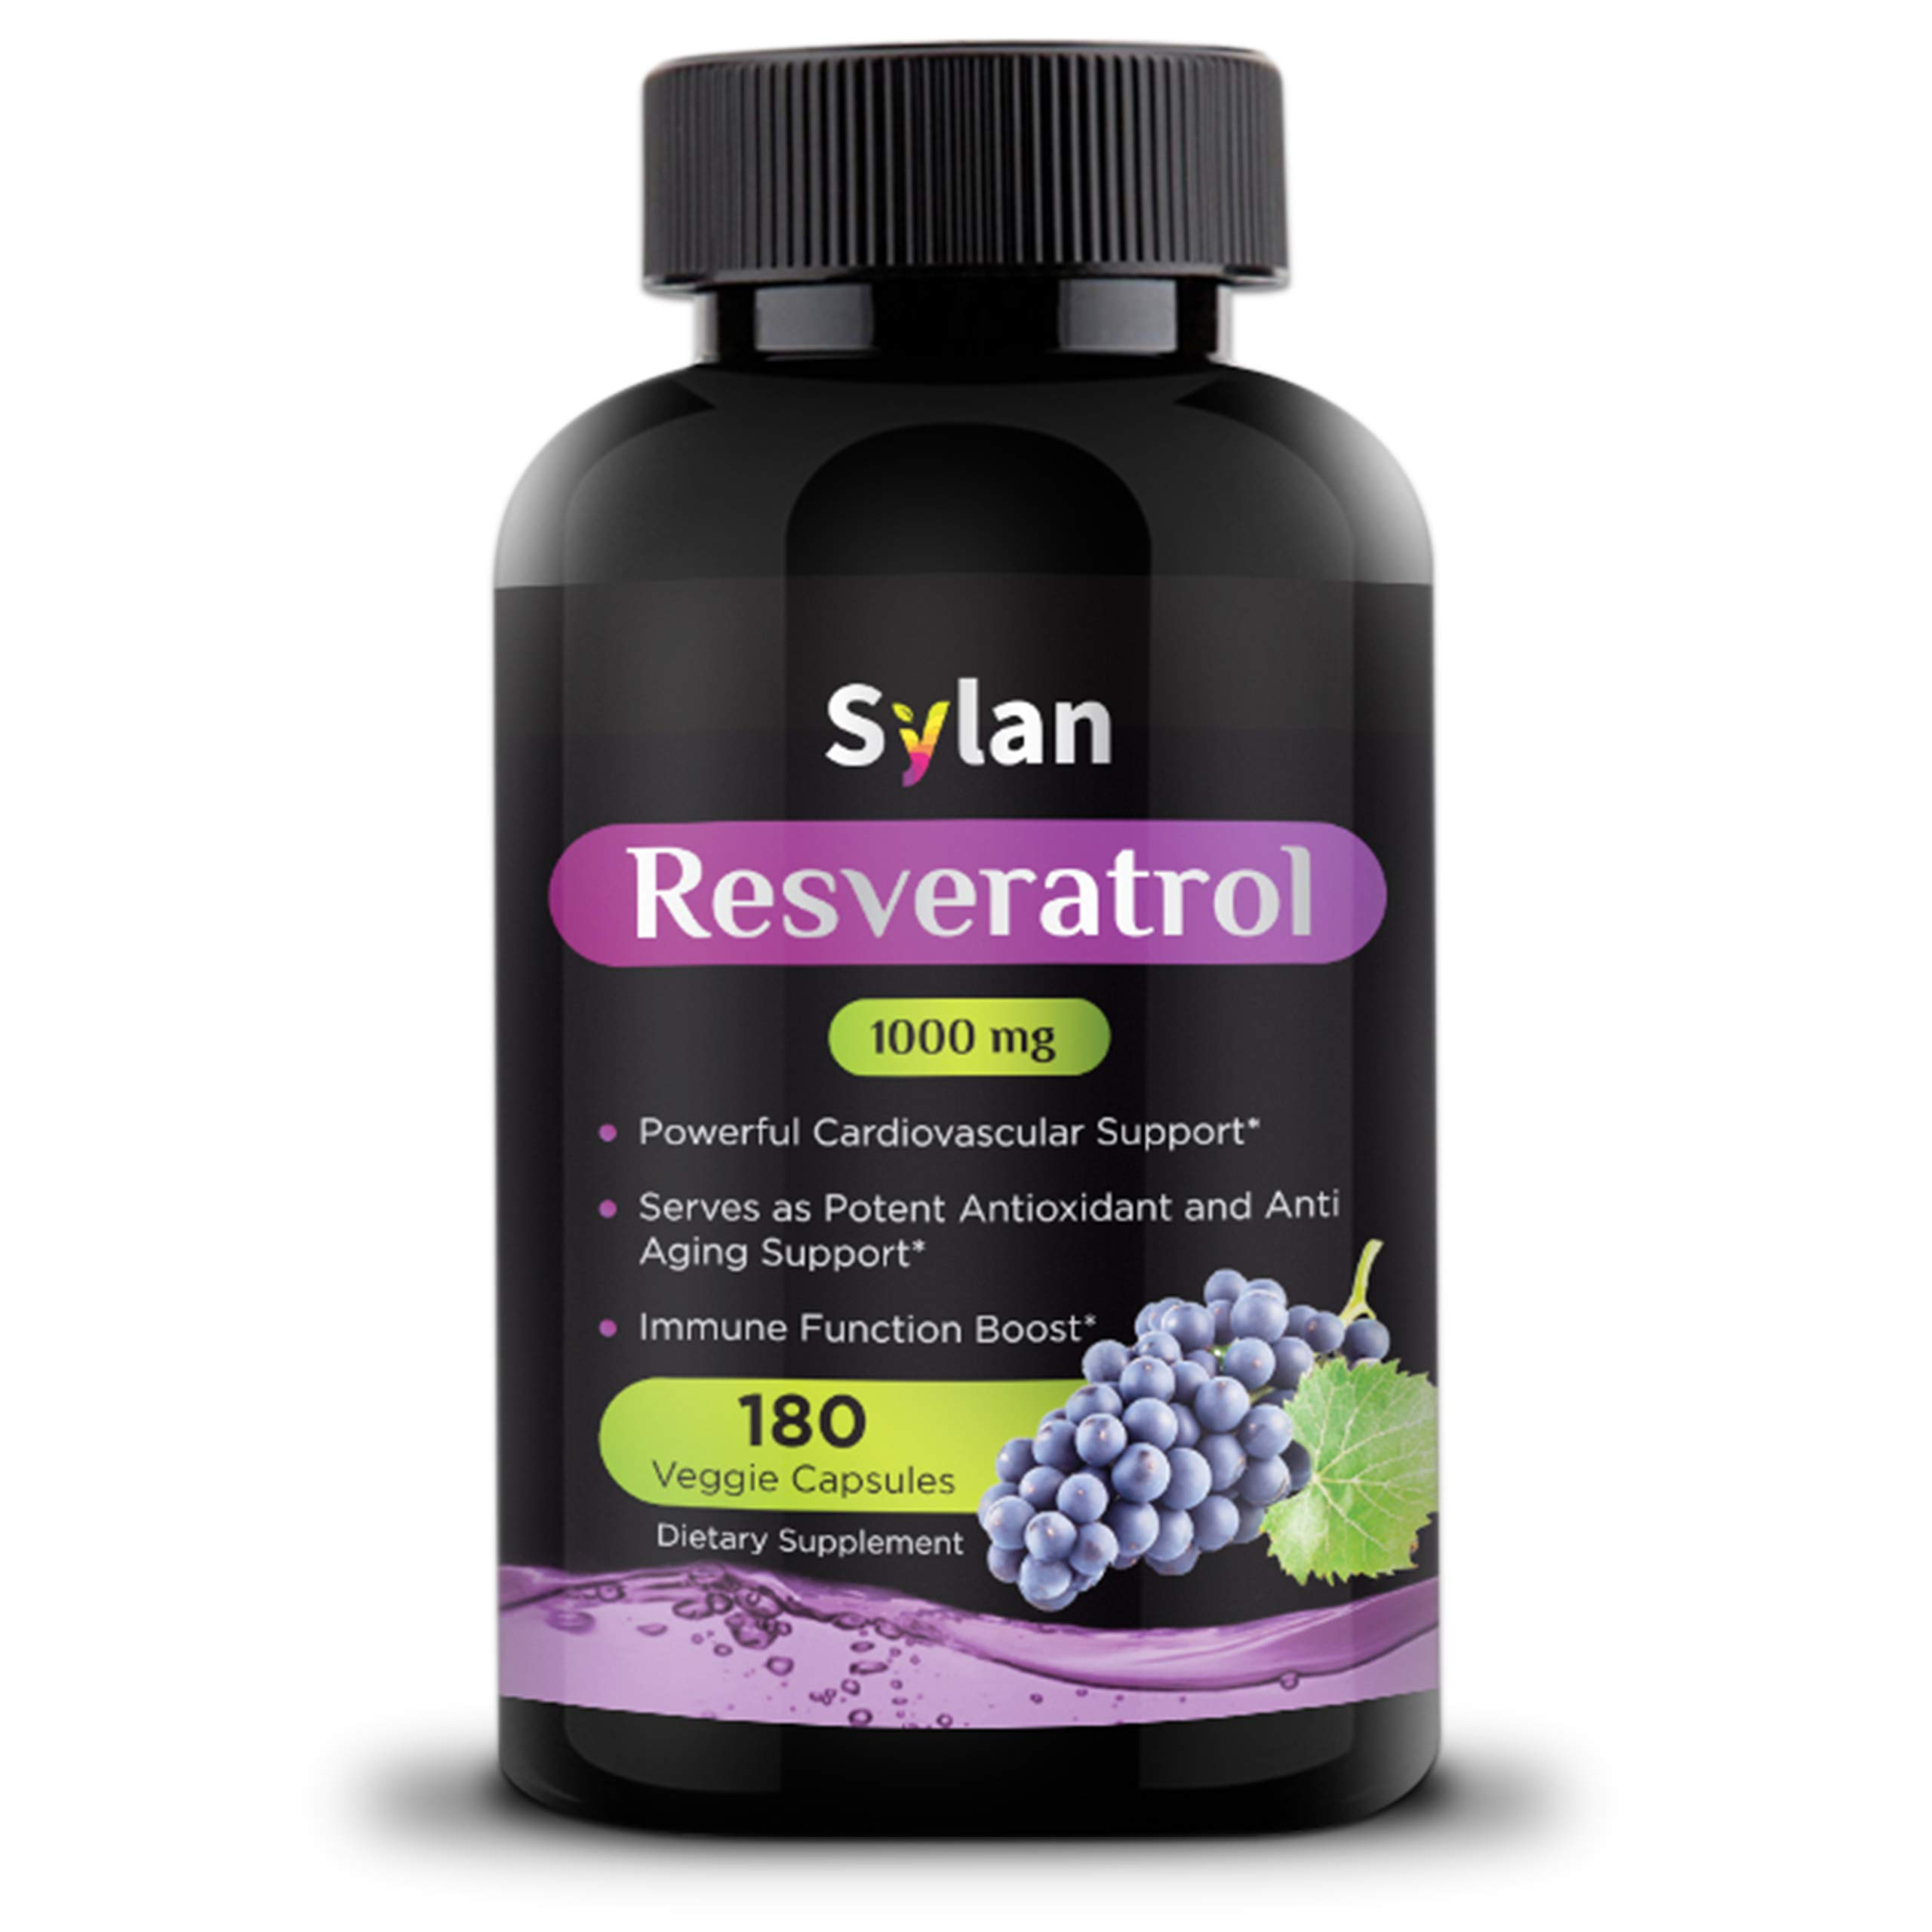 Sylan Trans Resveratrol 1000mg 180 Capsules Antioxidant Anti Aging Supplement Supports Heart Health Natural Weight Loss Joint Support Brain Function & Immune System Health Veggie Non-GMO Made in USA